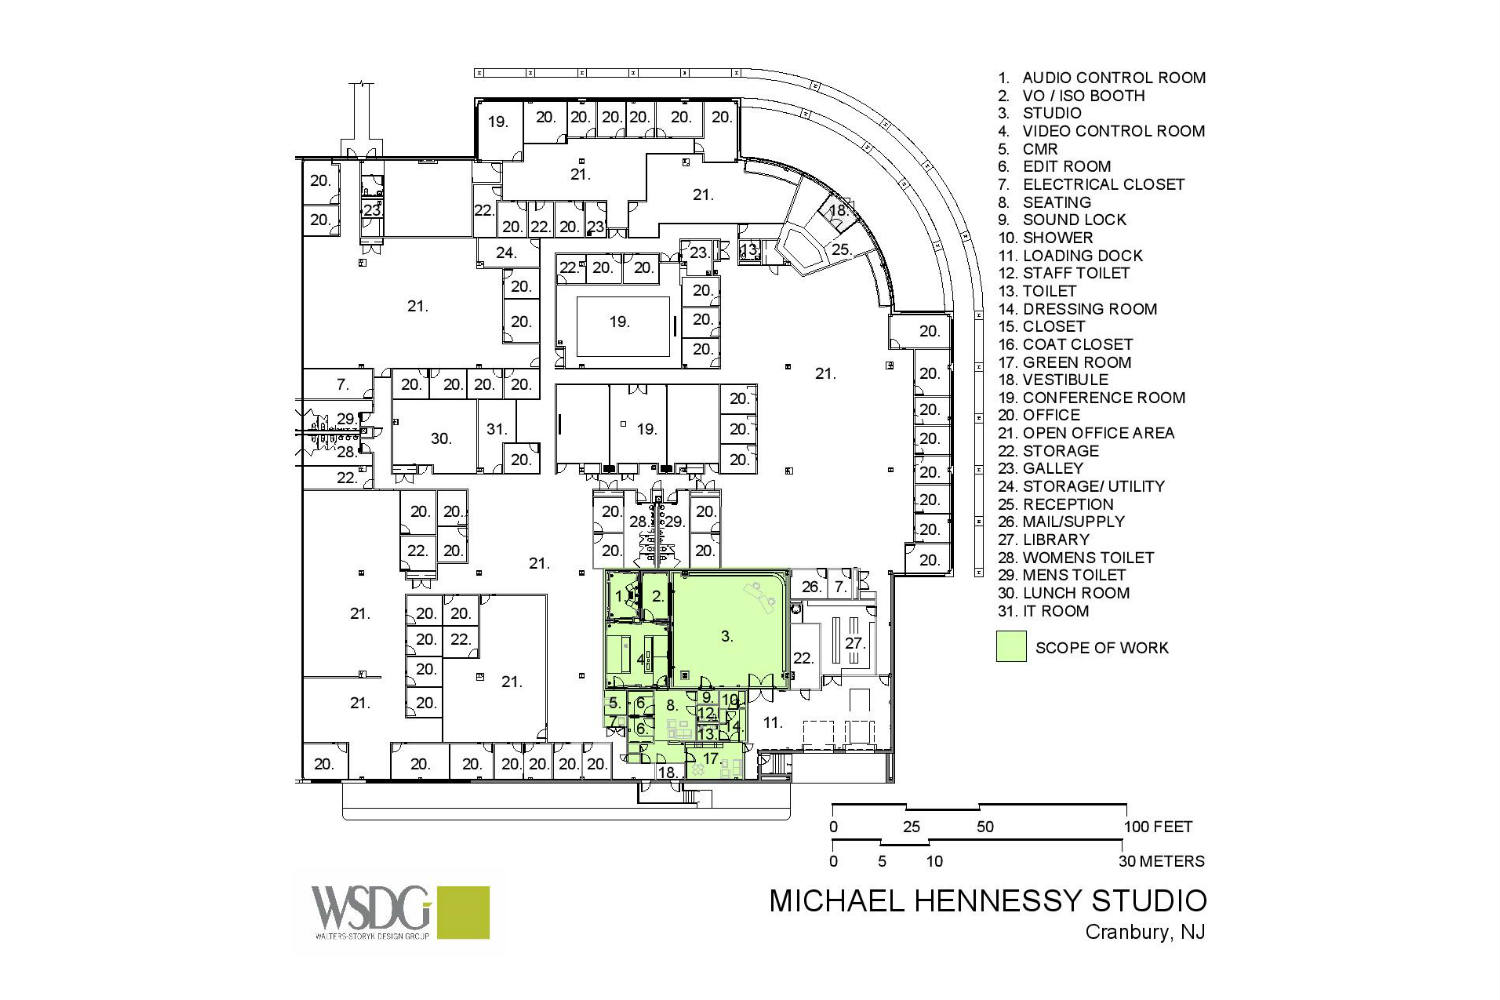 MJH Studios in NJ, designed by WSDG, is a world-class recording and production facility for the main use of creating audio and video healthcare-related content by MJH for their clients. Presentation Drawing 2